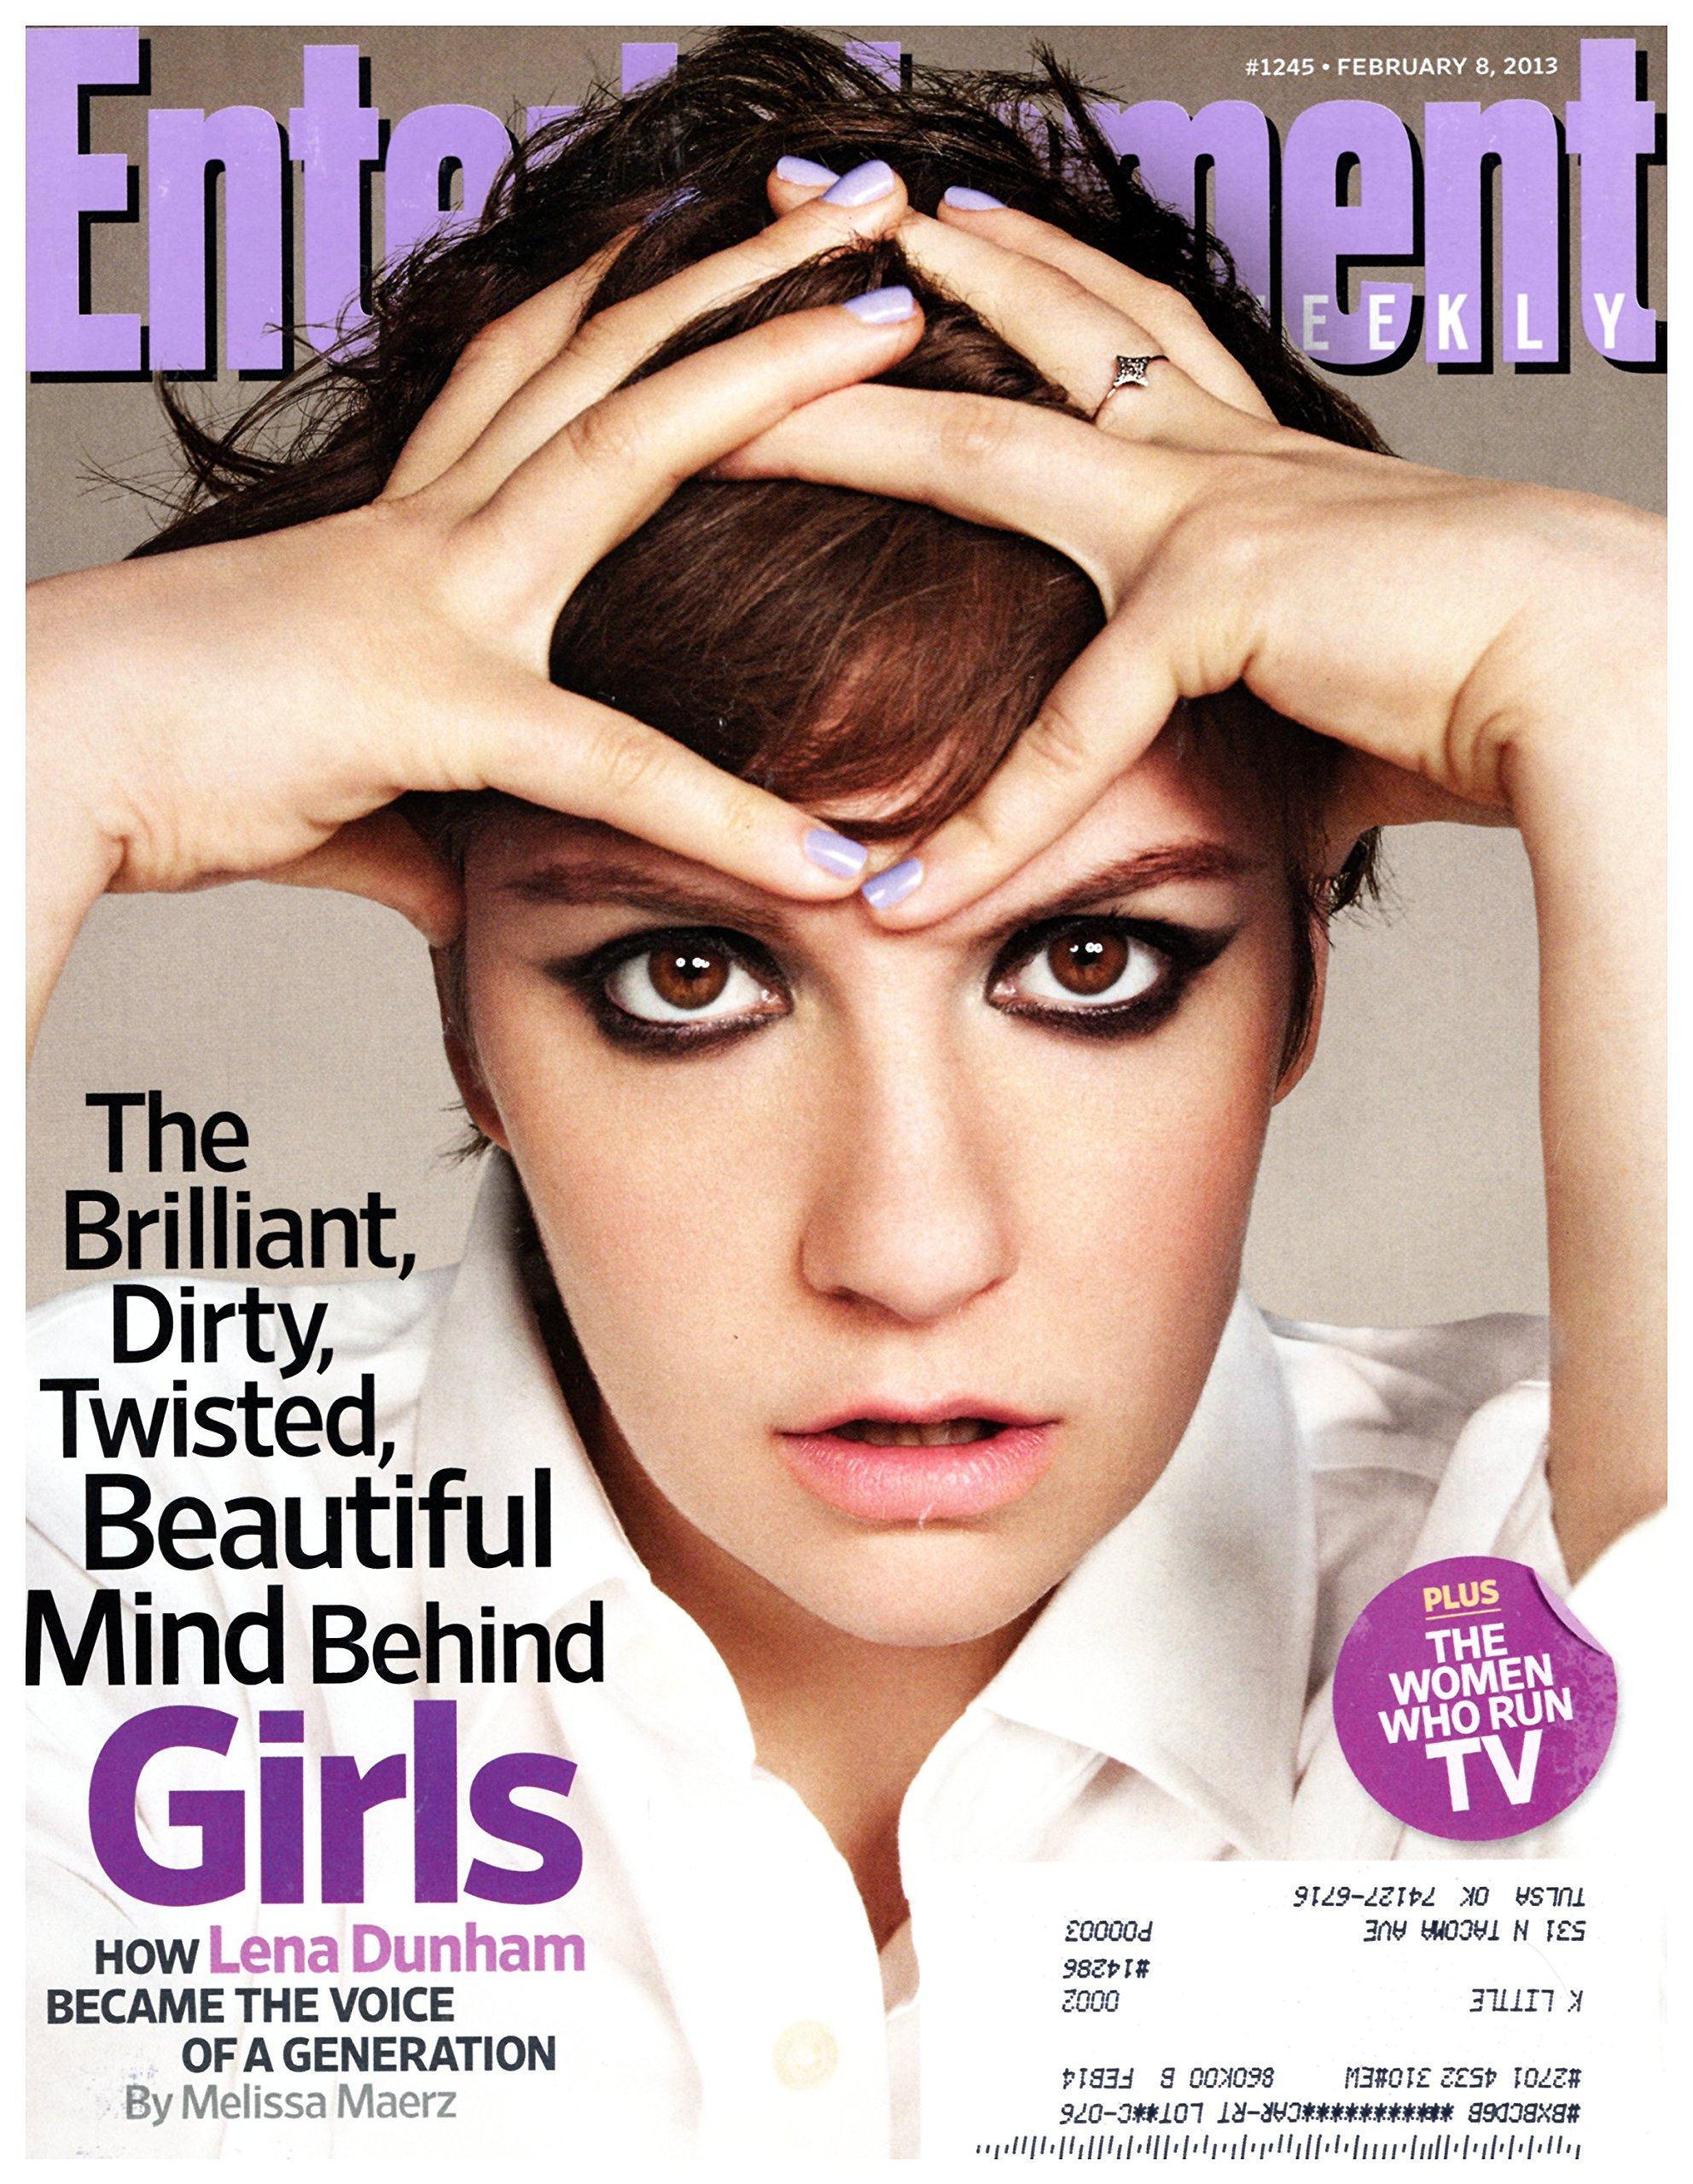 Entertainment Weekly February 8, 2013